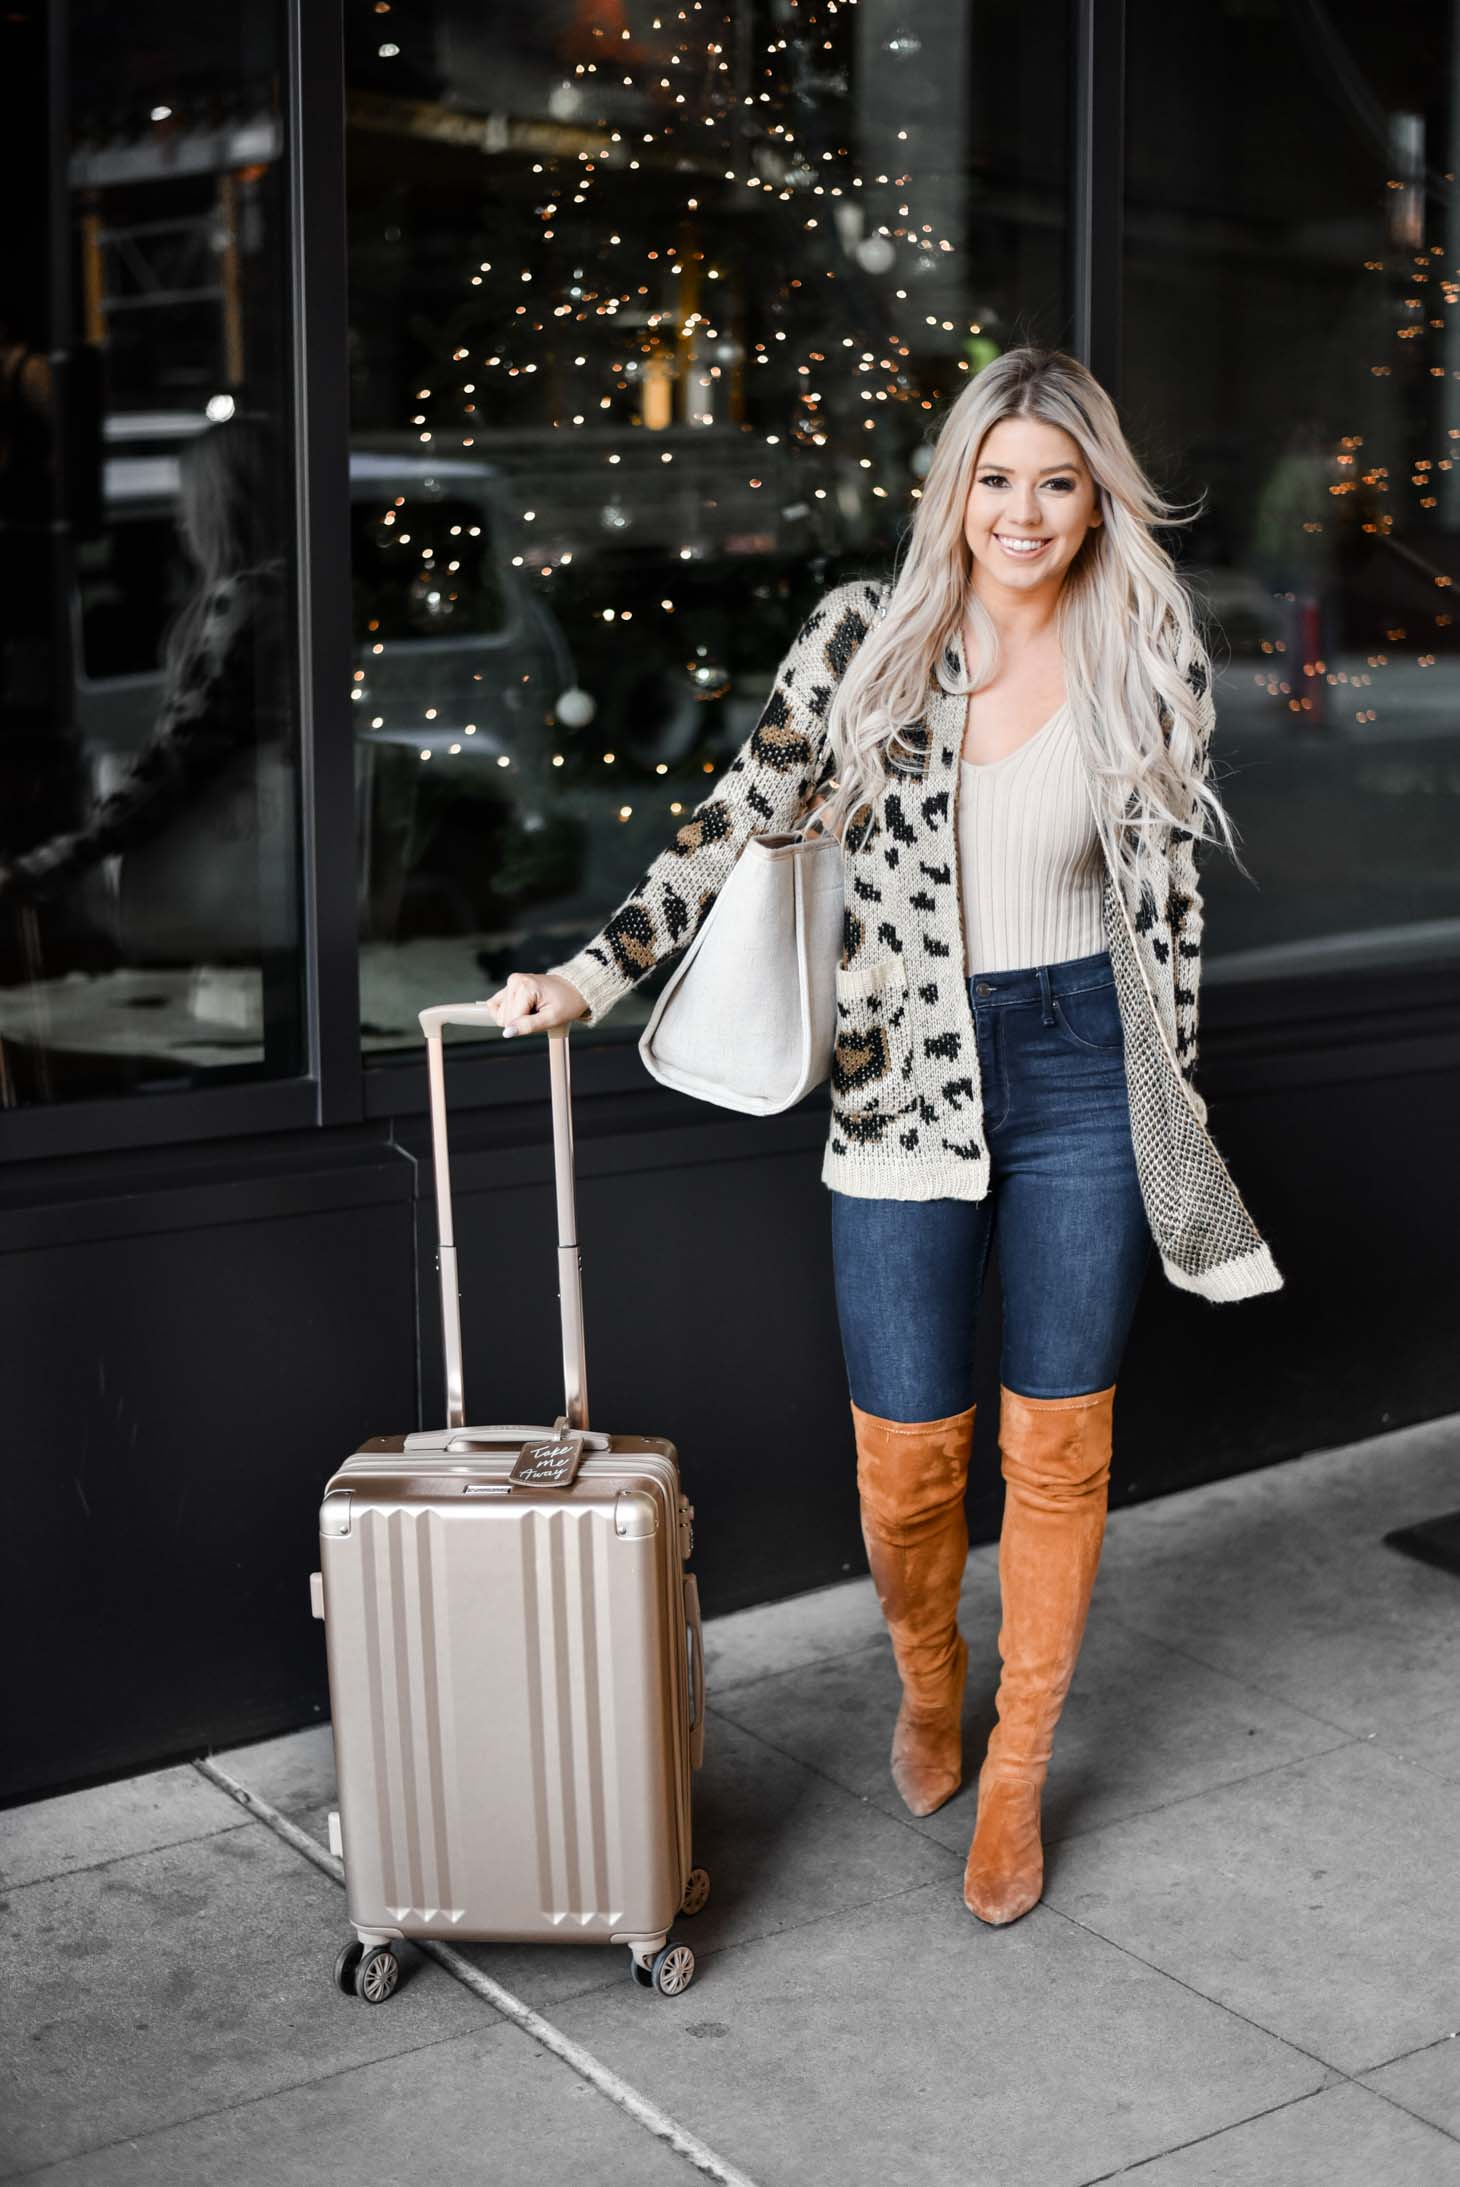 Erin Elizabeth of Wink and a Twirl shares the perfect travel style and travel gifts